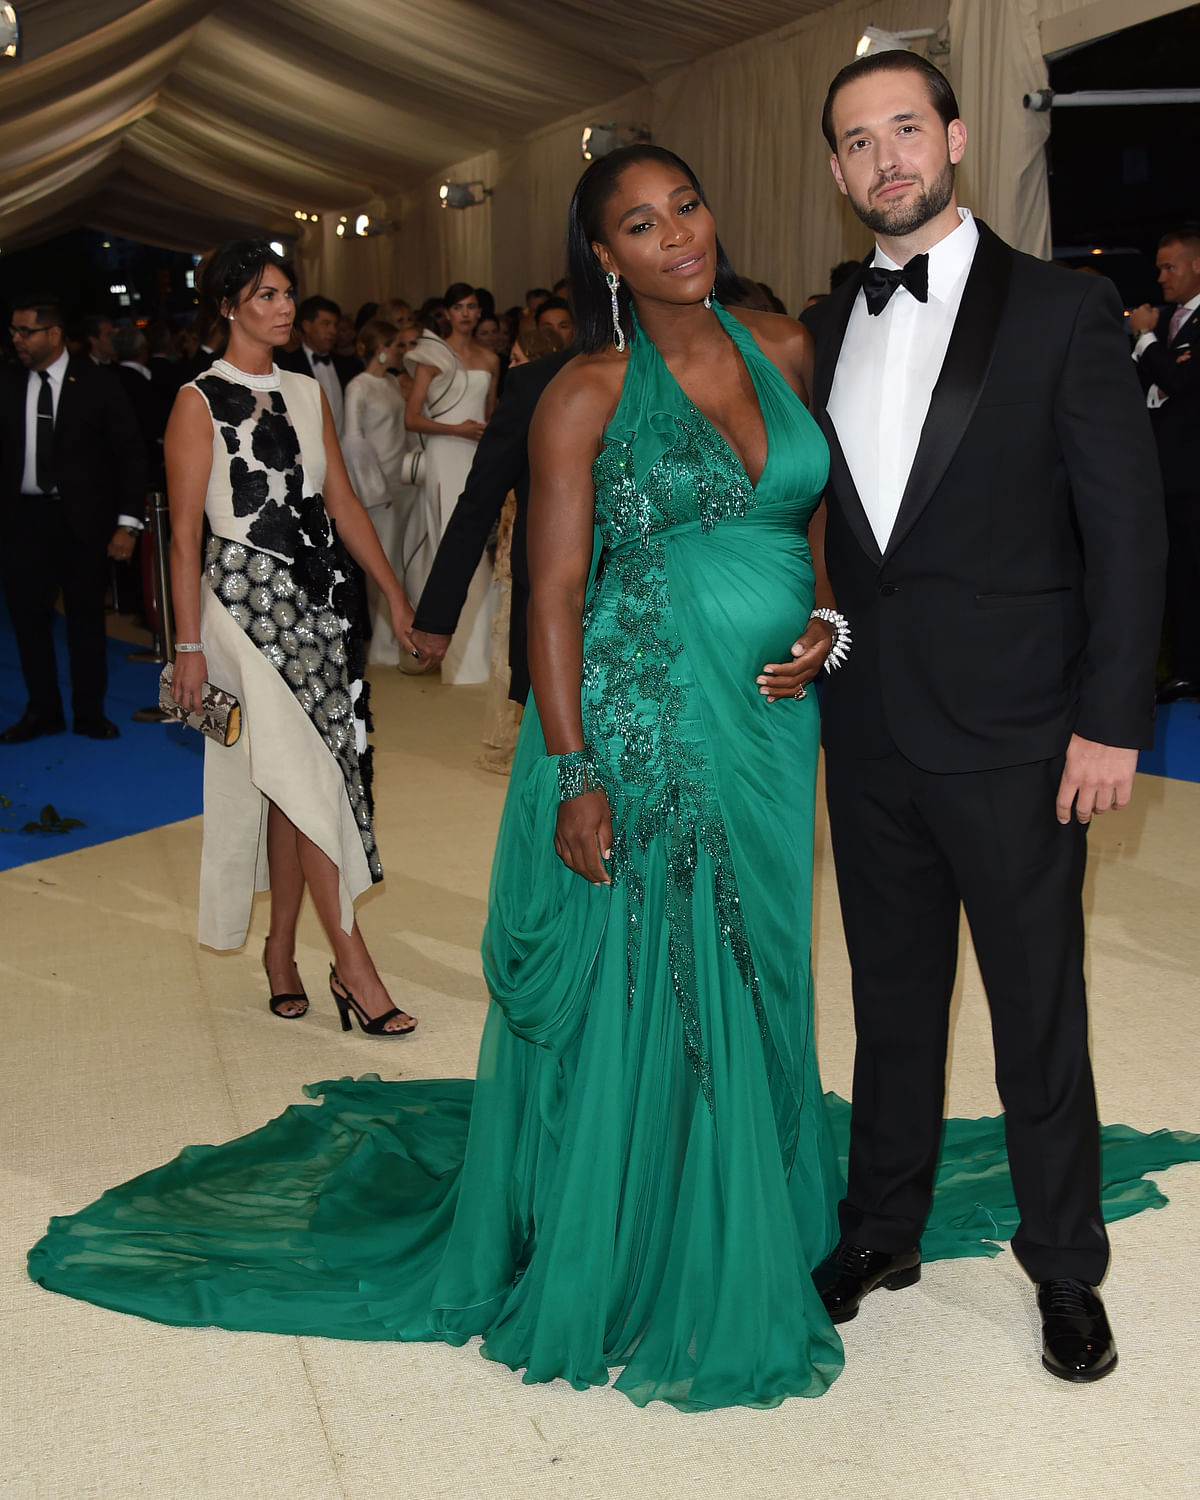 Serena Williams, left, and Alexis Ohanian at The Metropolitan Museum of Art's Costume Institute benefit gala. (Photo: AP)